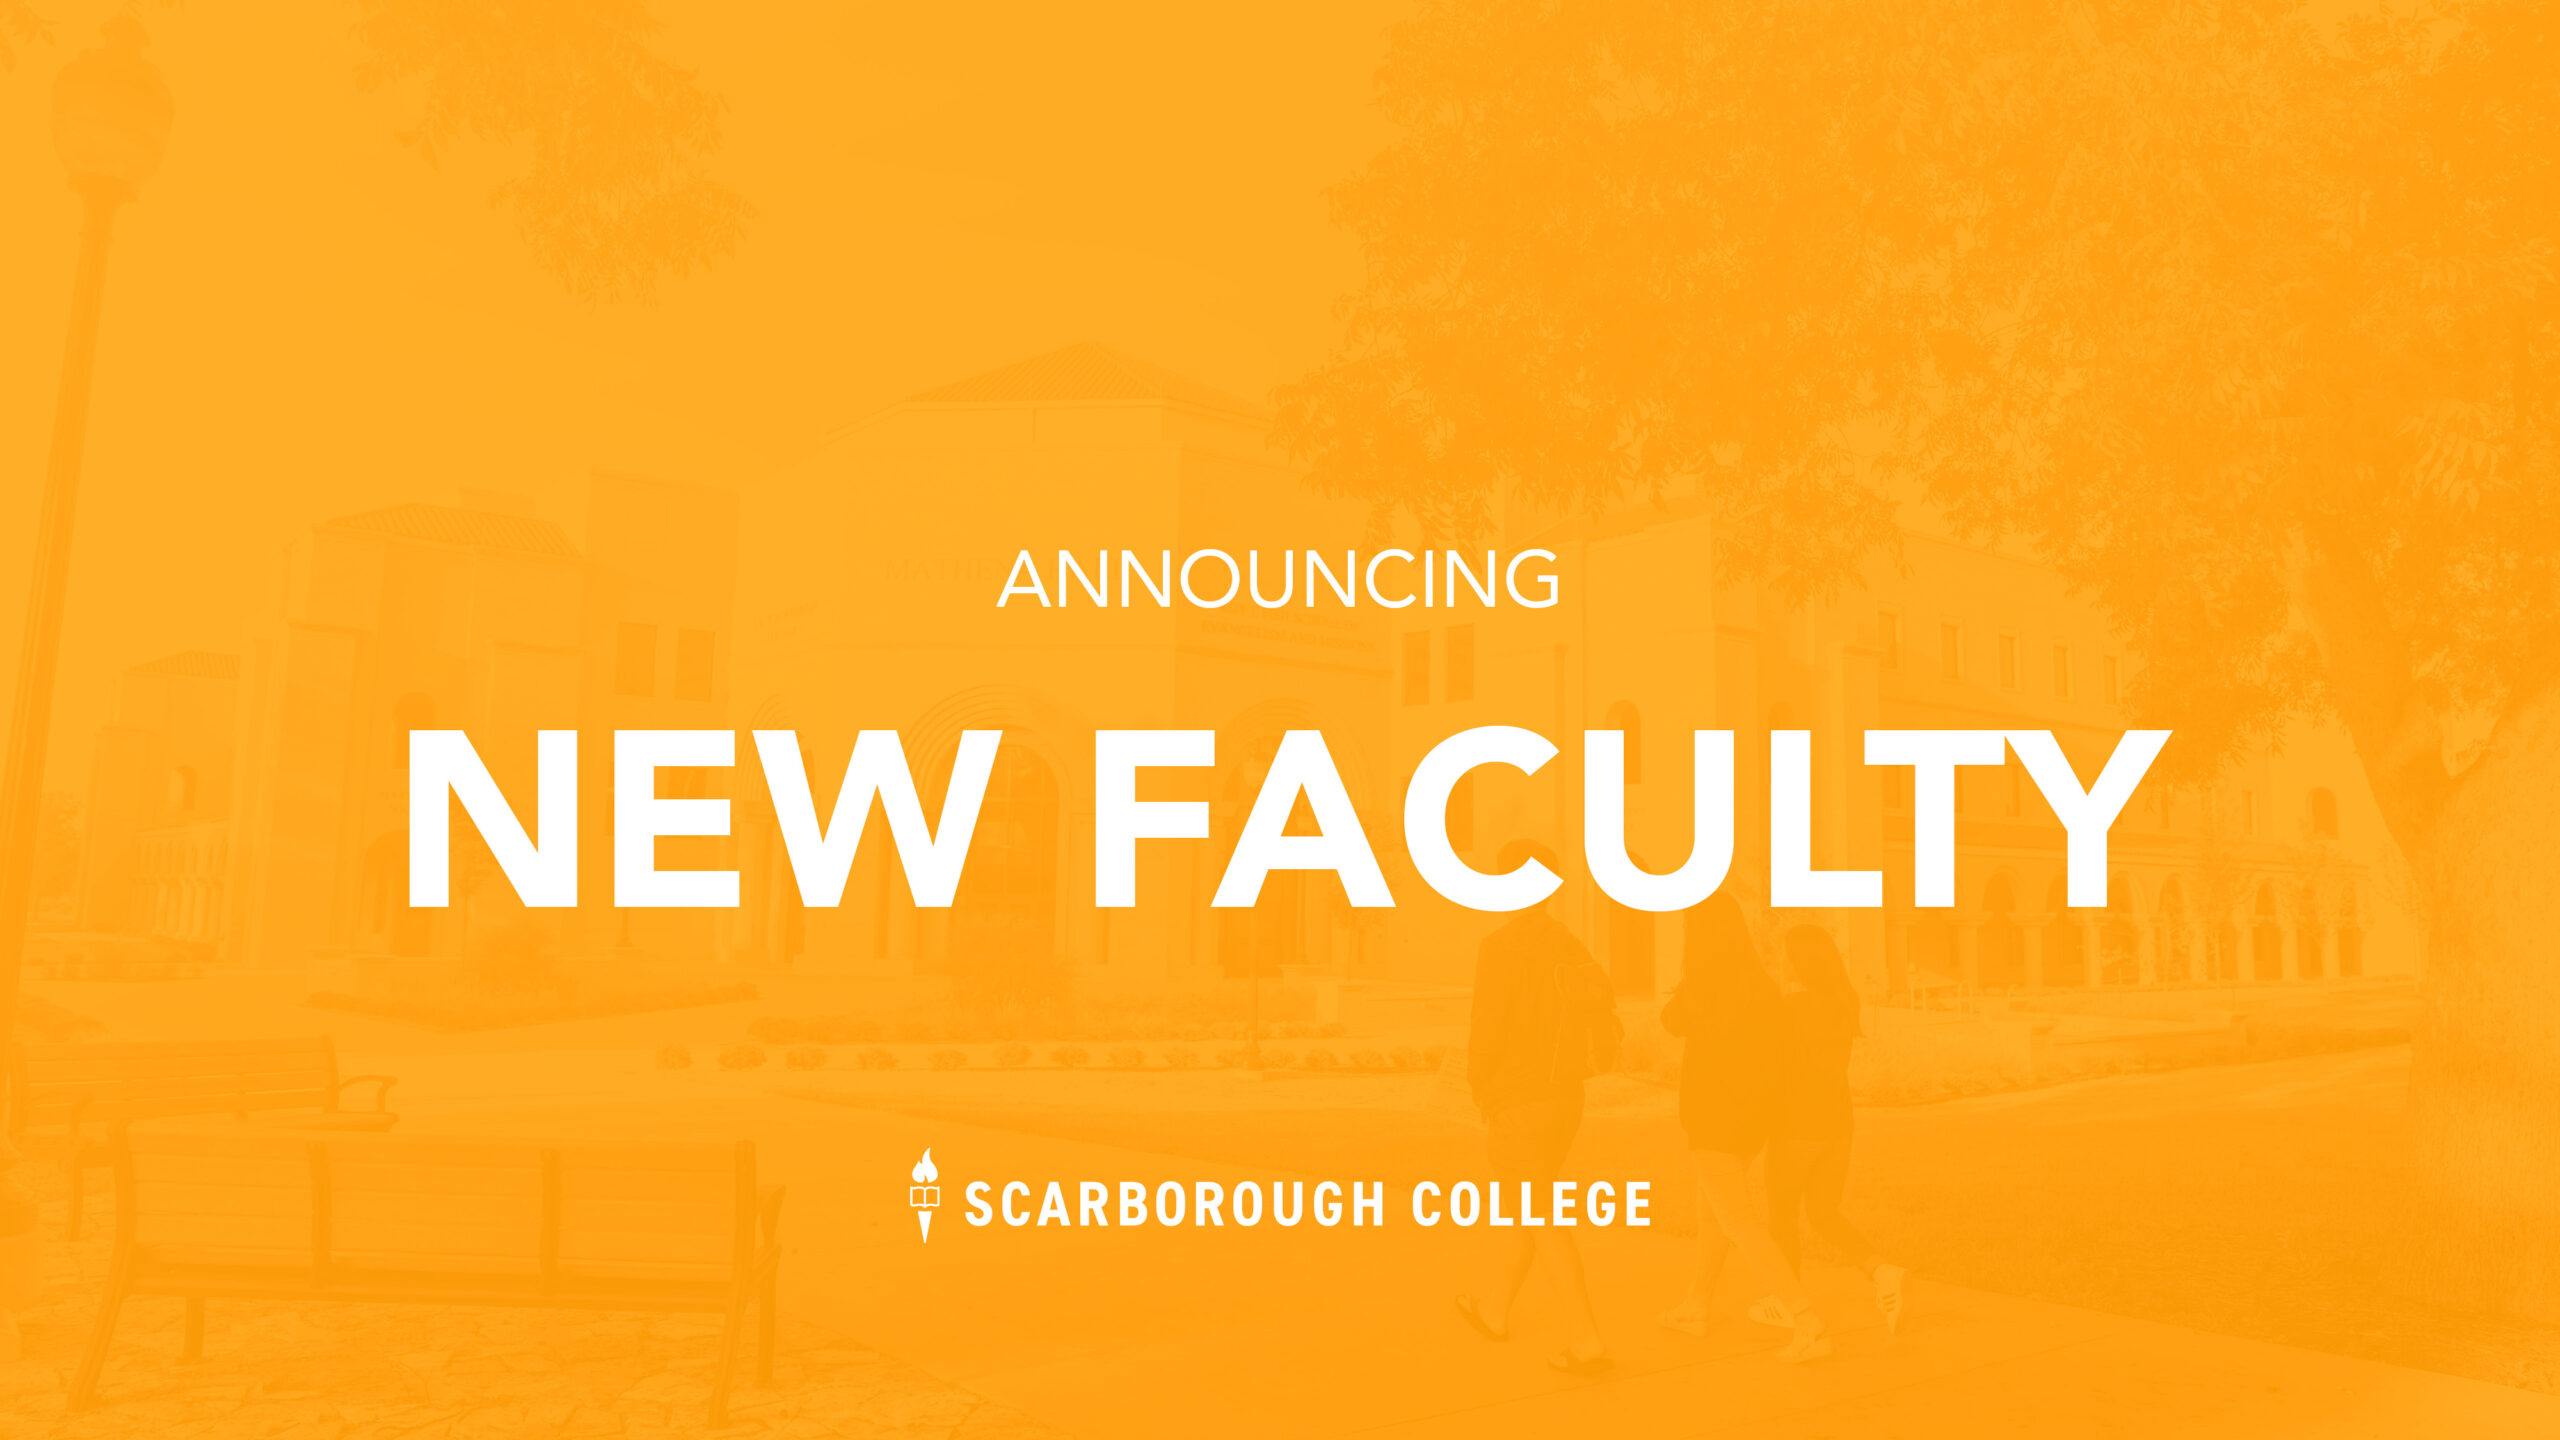 Four appointed to Scarborough College faculty